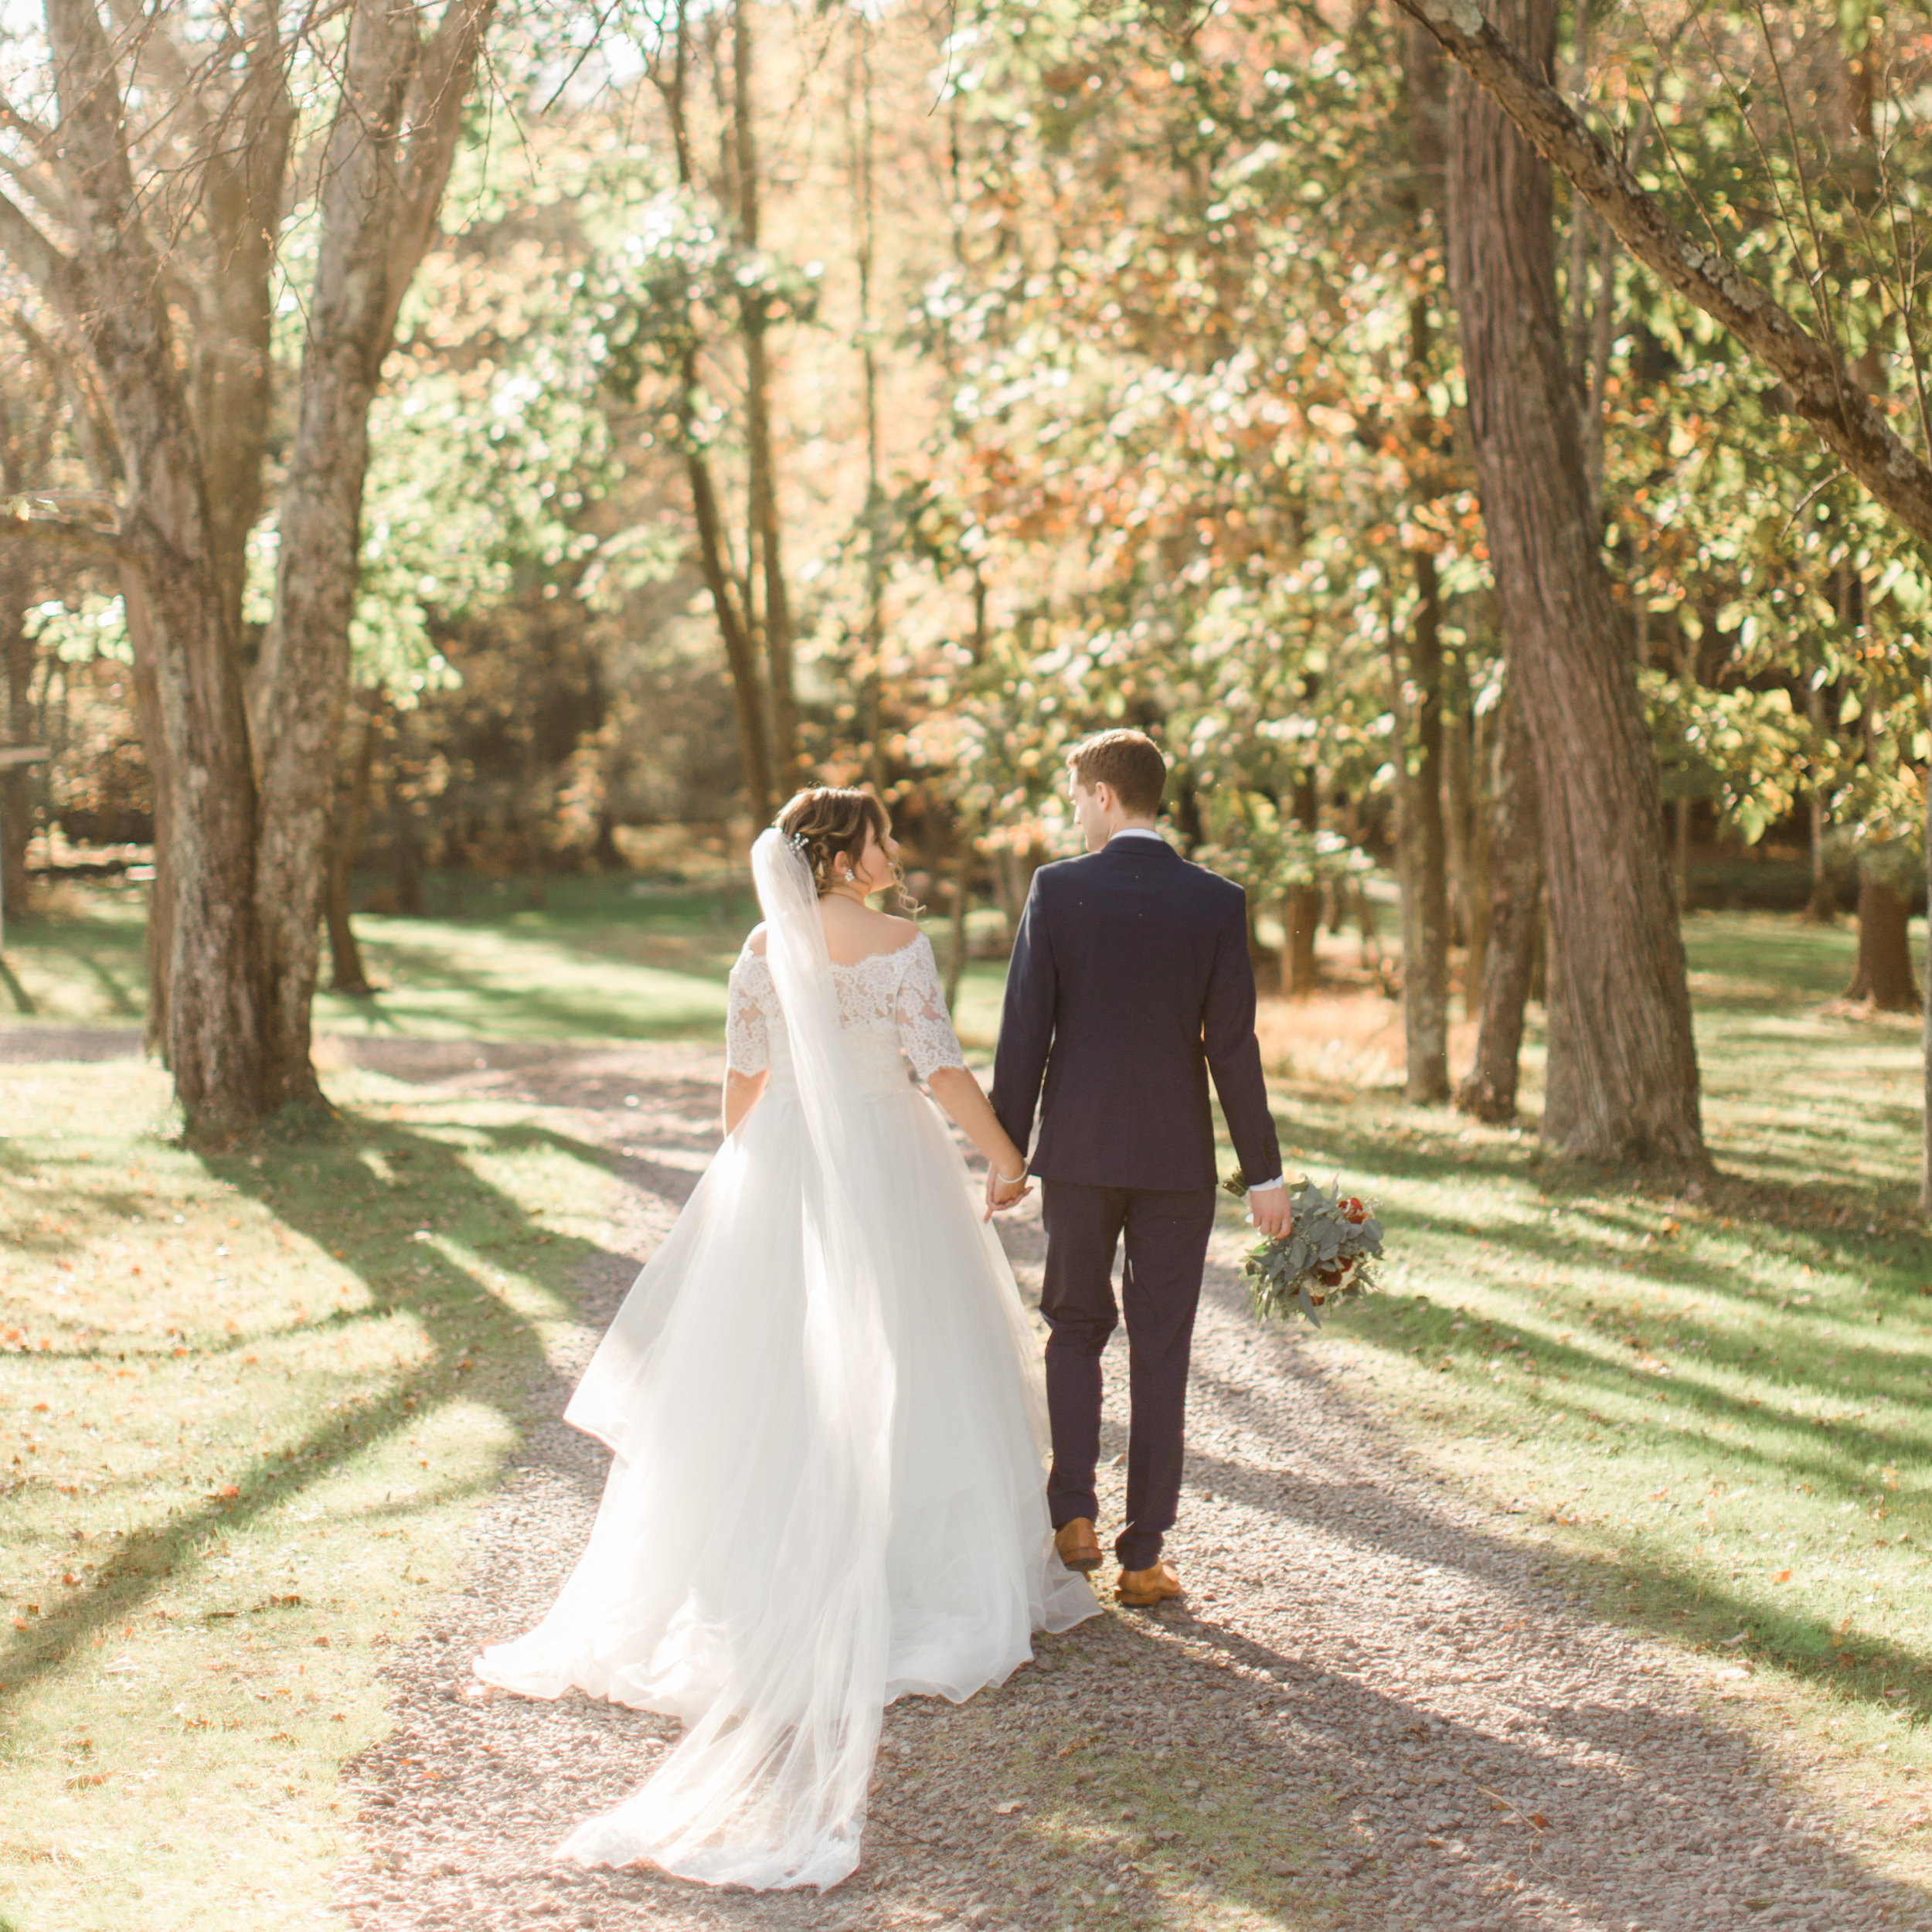 amandaandmike_preview (1 of 1)-3.jpg